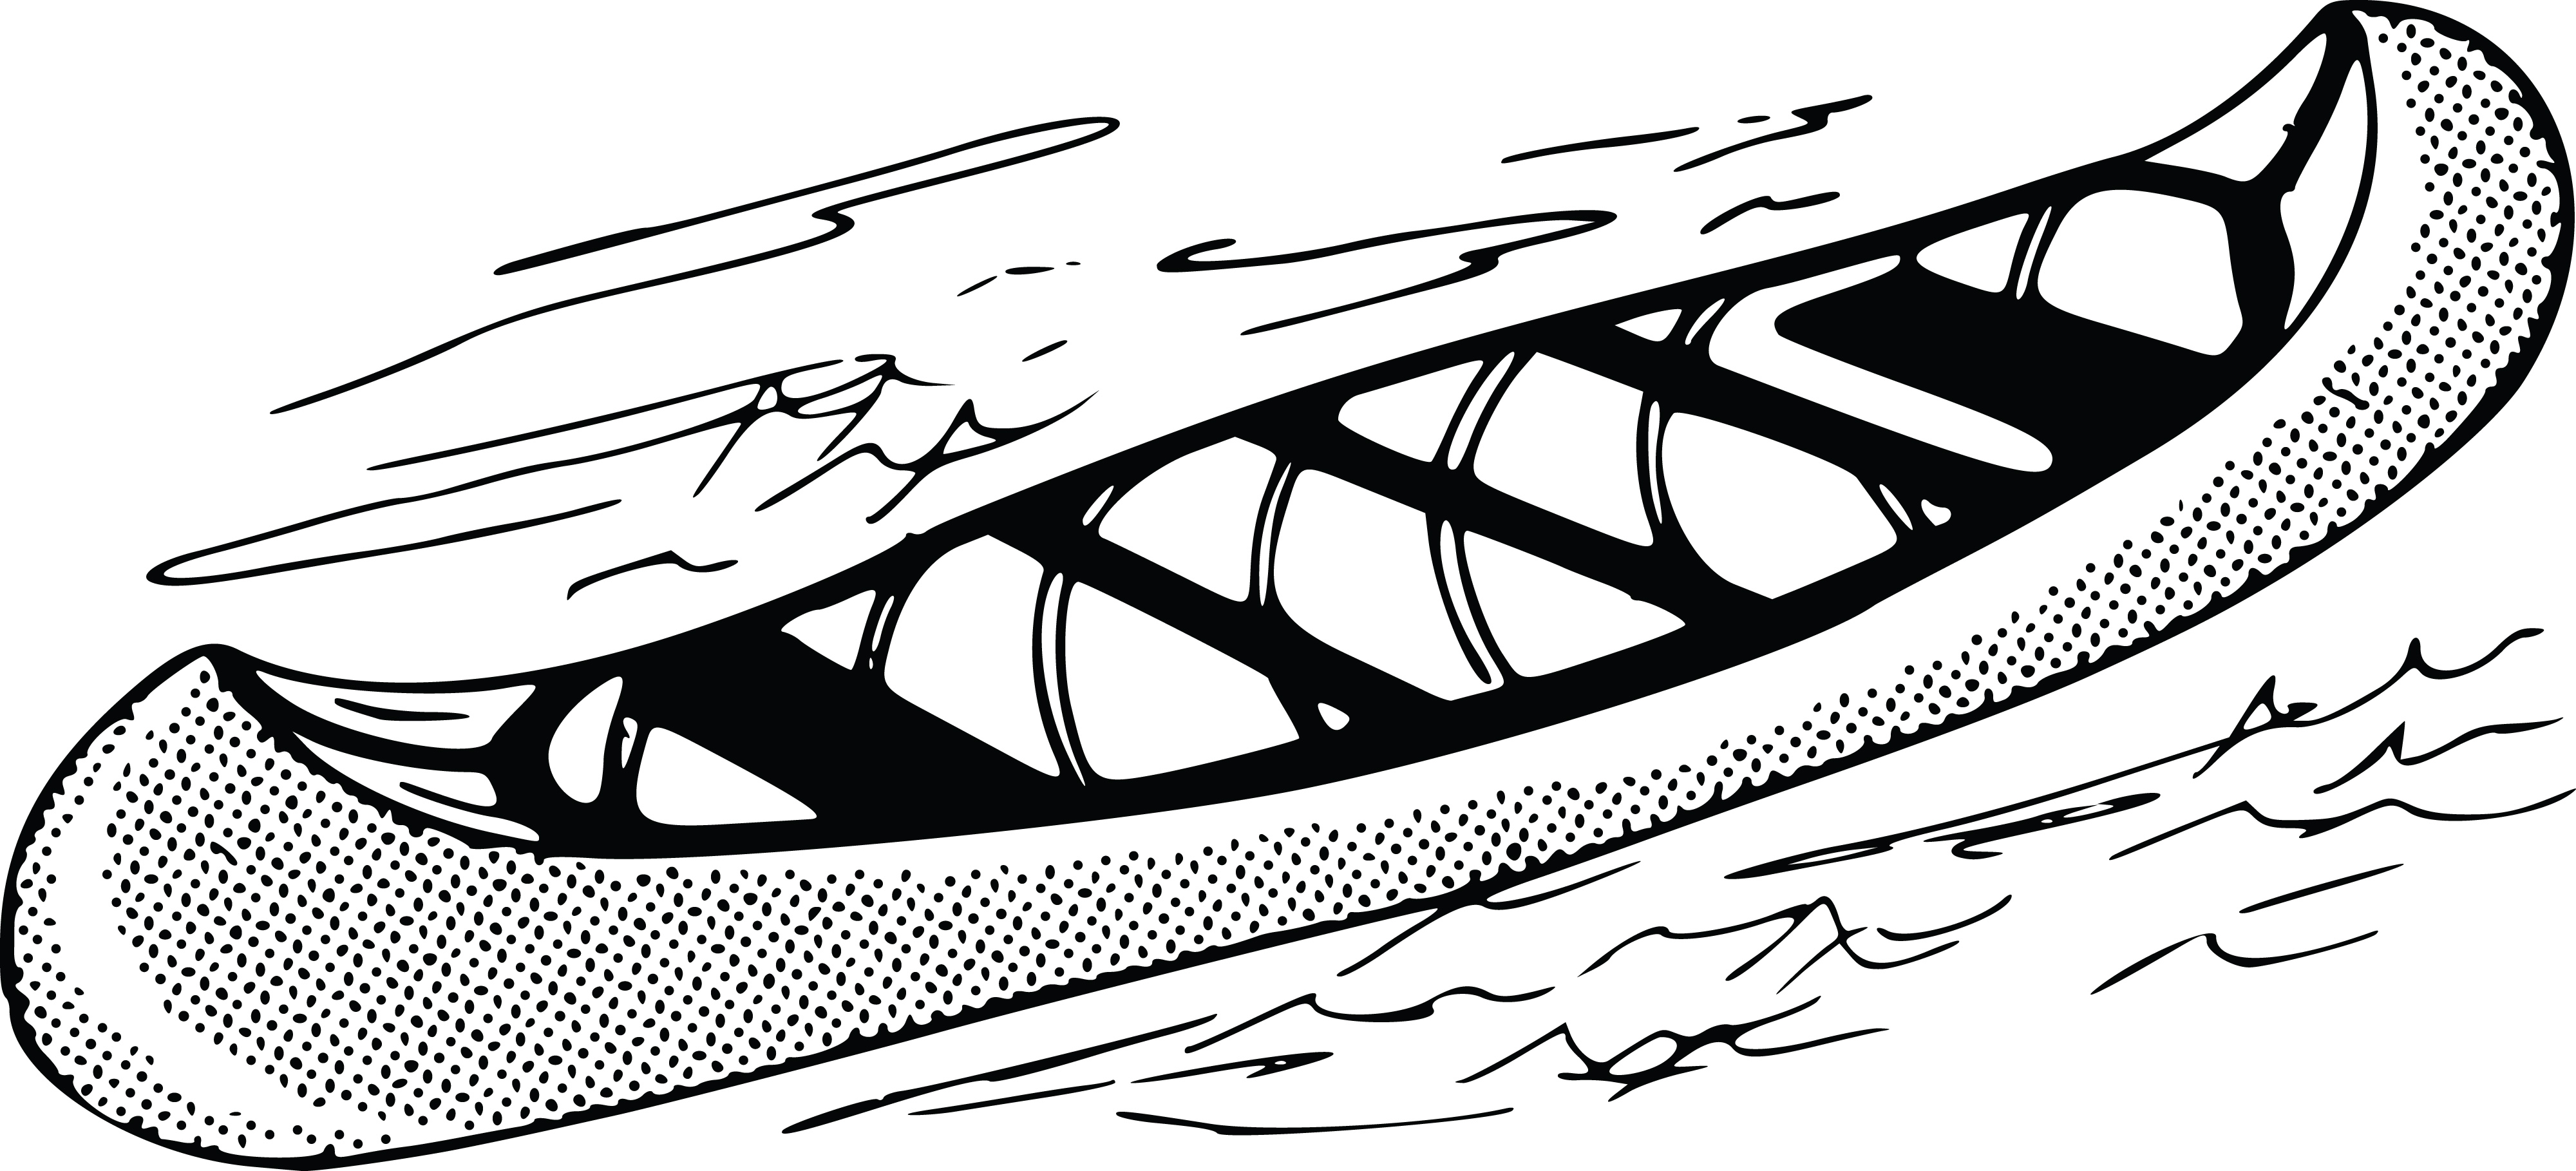 jpg library download Collection of free bleck. Canoe clipart black and white.